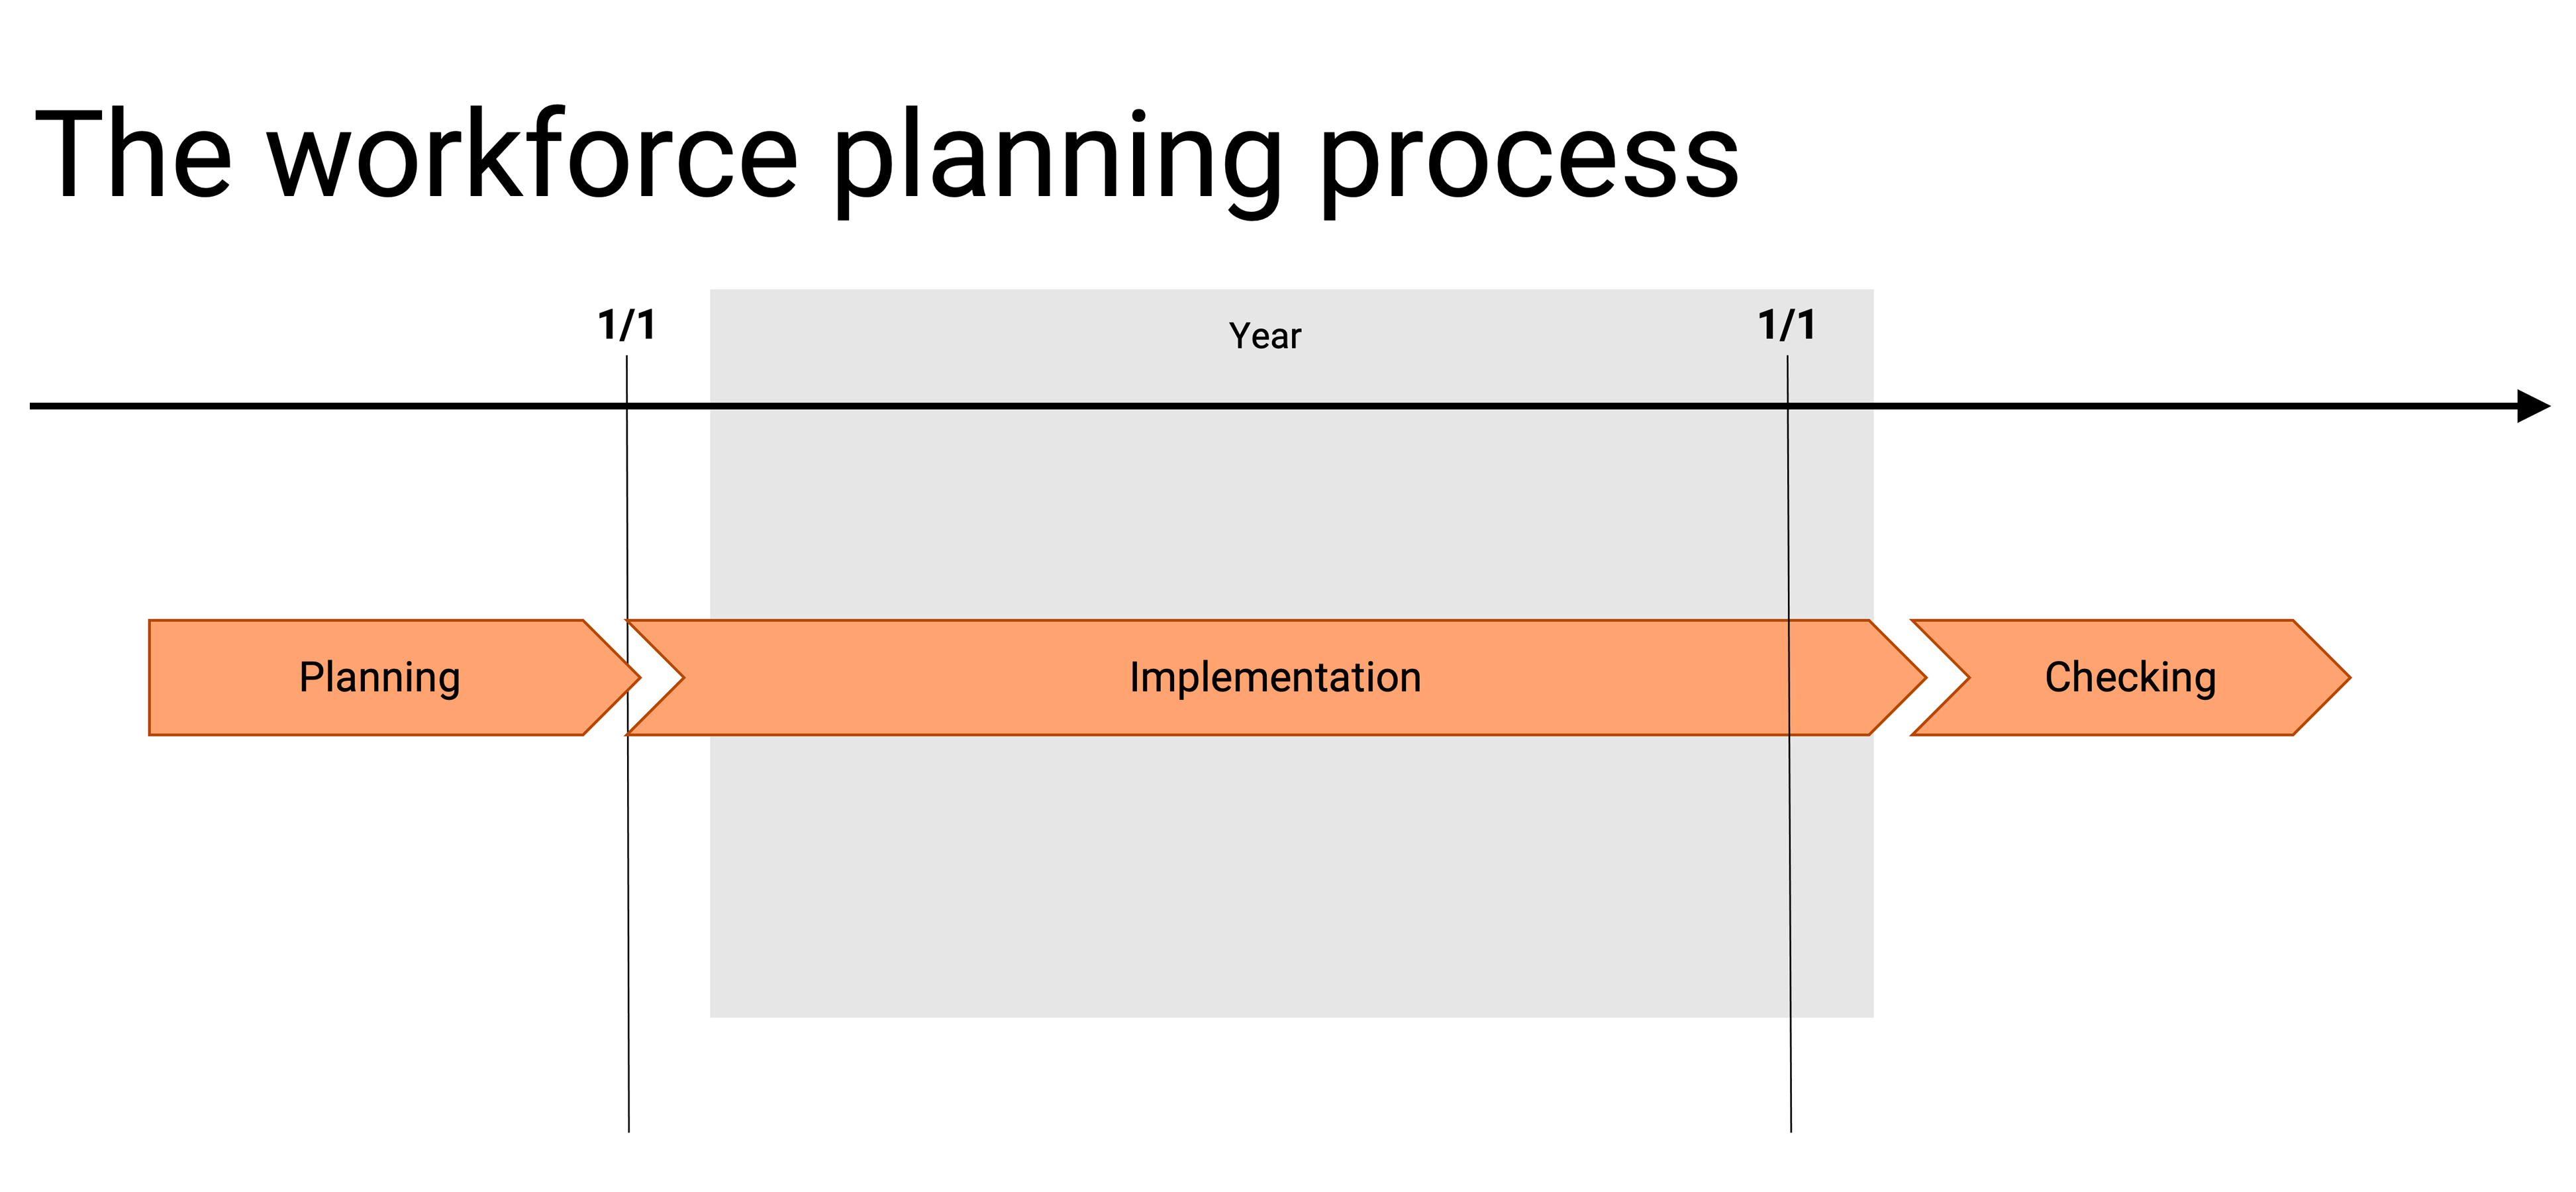 The workforce planning process